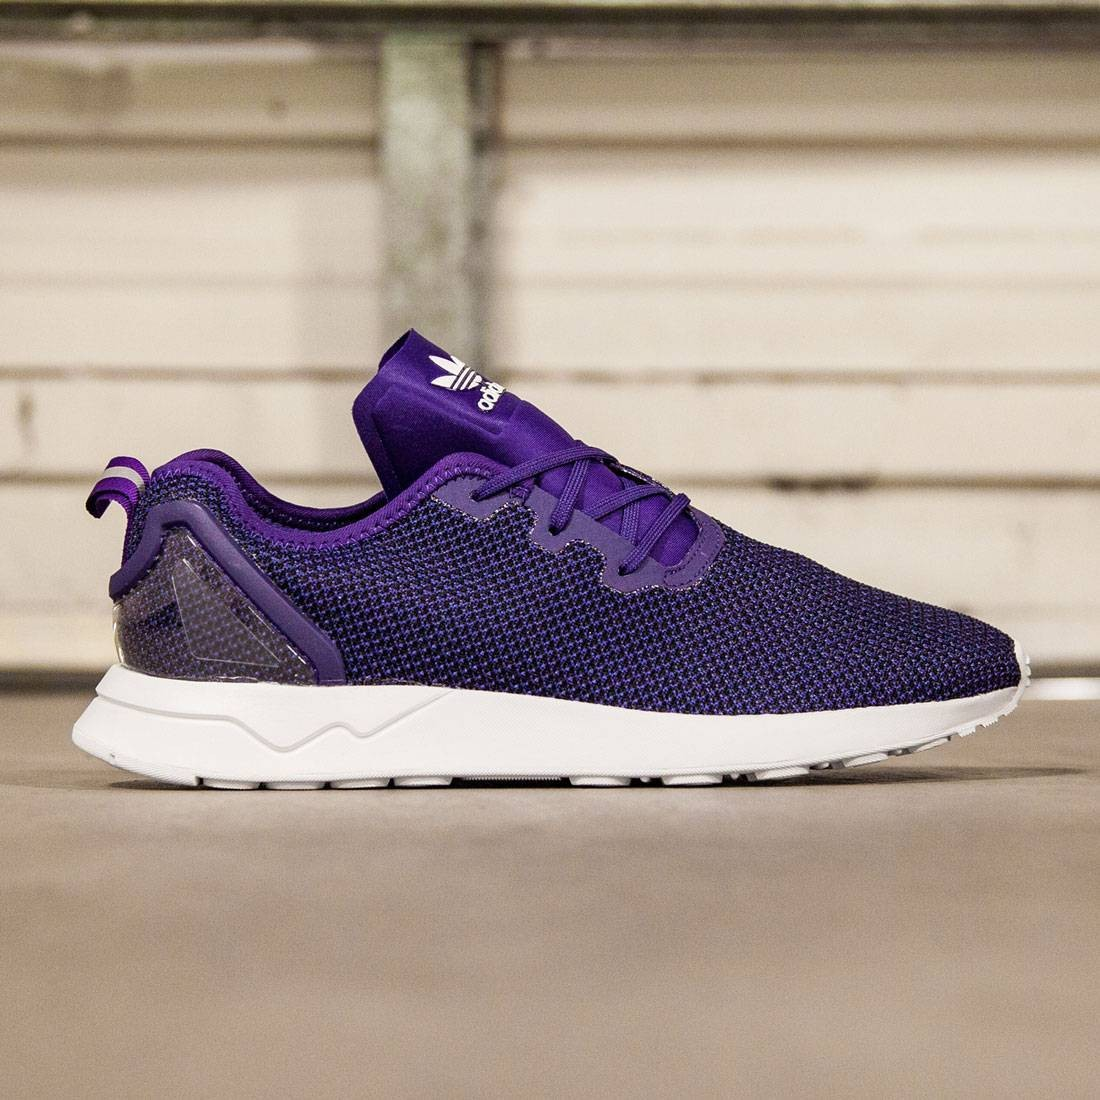 adidas zx flux mens purple